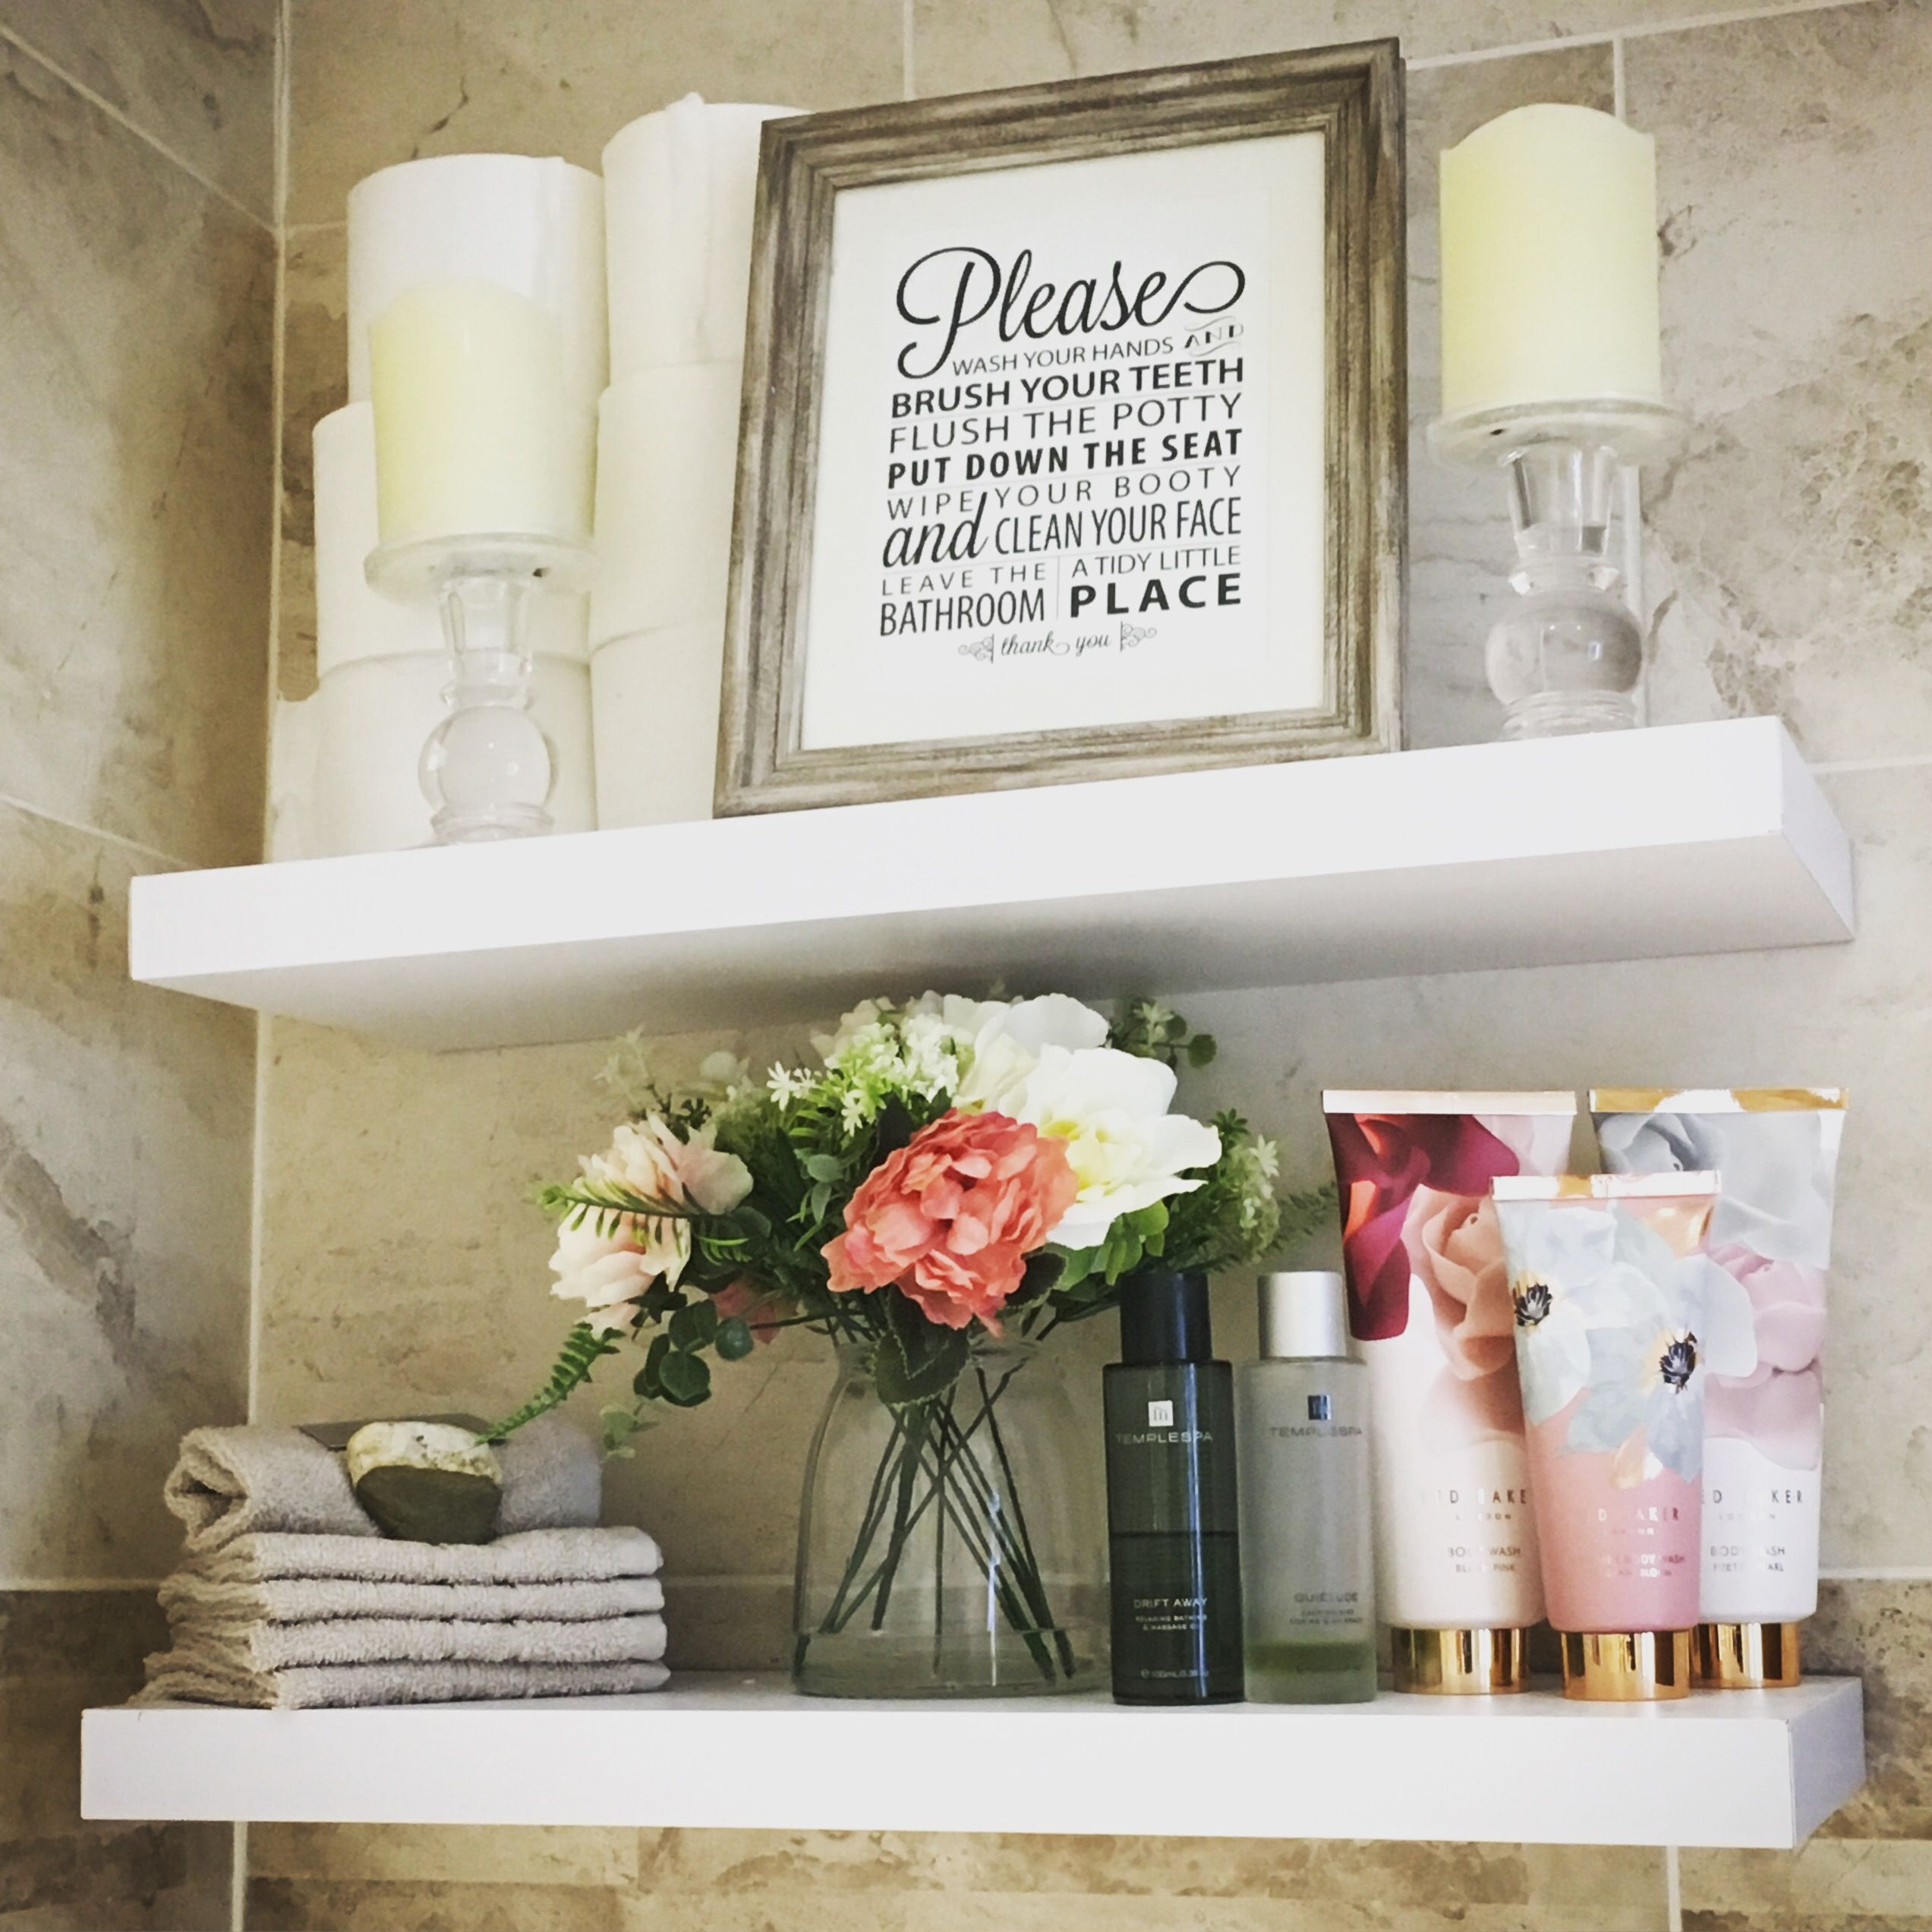 Bathroom Shelving Idea Perfect For Prettying Up The Bathroom And Coming In Handy For Savvy Storage Too Candles Frame Flowers From T Cheap Bathroom Makeover Storage Shelves Best Bathroom Tiles